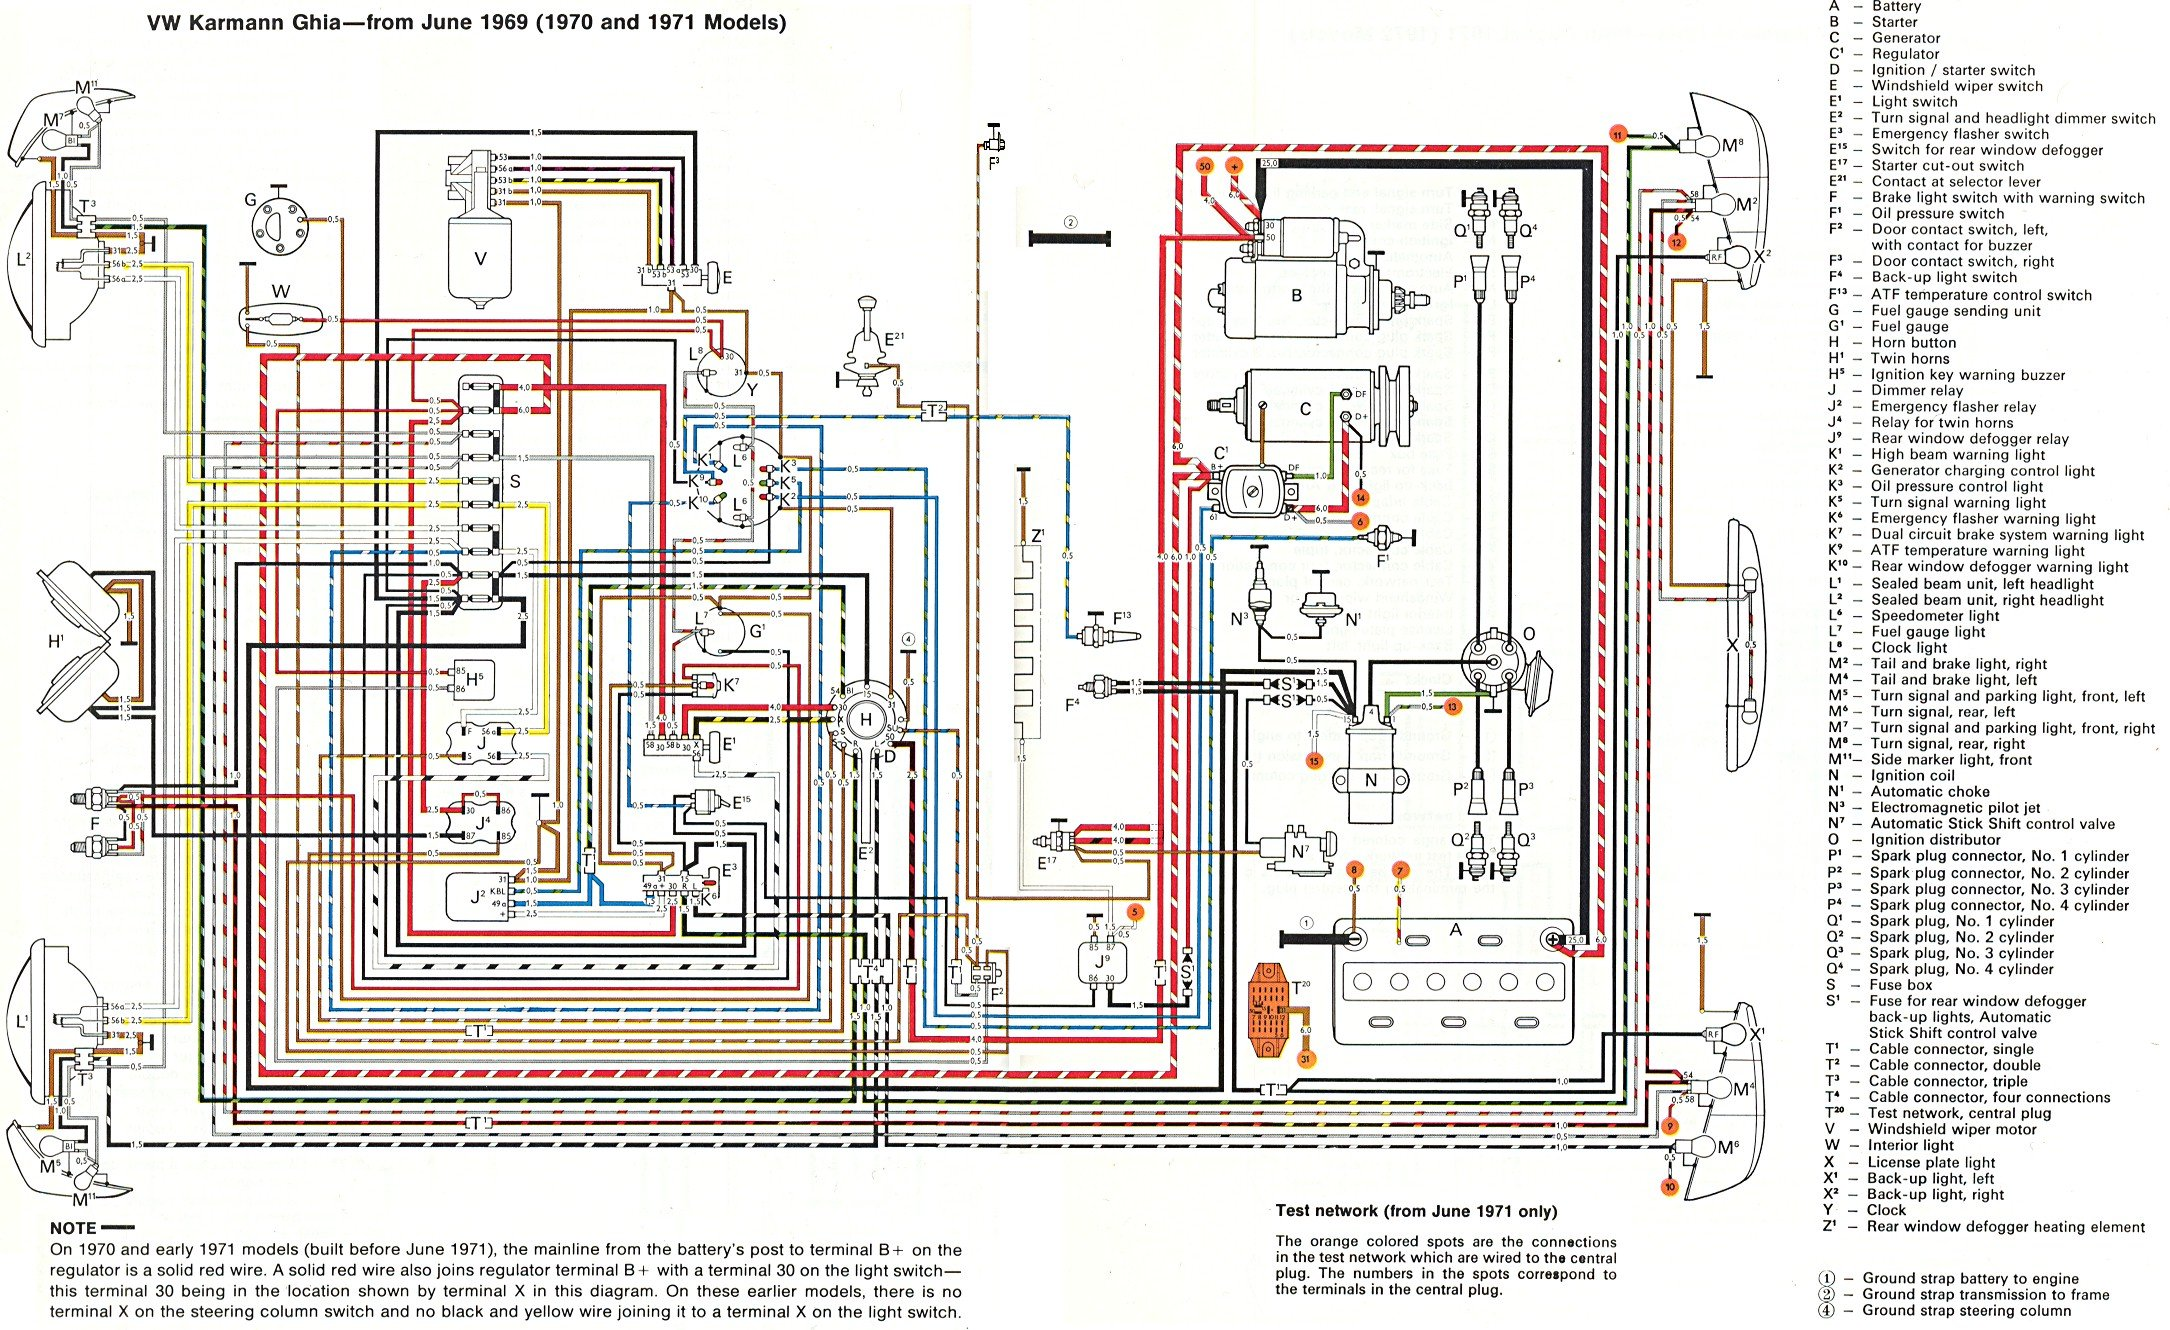 1967 vw karmann ghia wiring diagram vw karmann ghia wiring schematic thesamba.com :: karmann ghia wiring diagrams #6